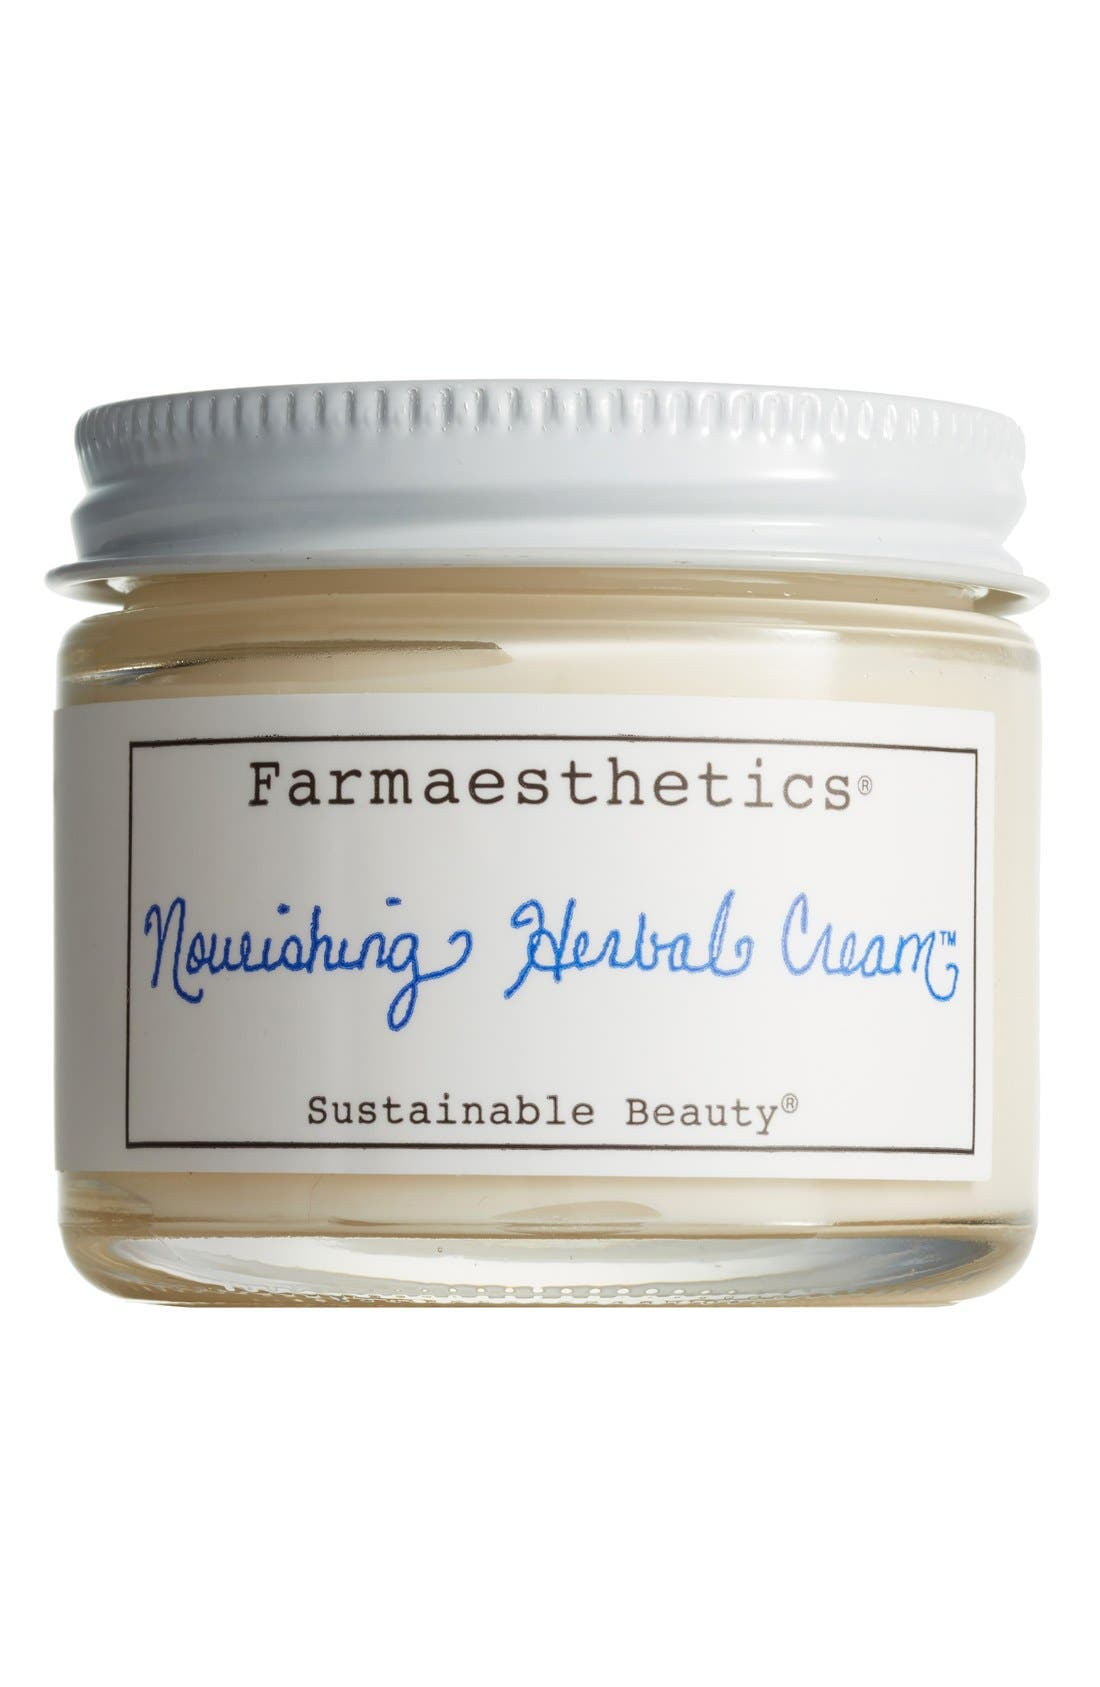 Farmaesthetics Nourishing Herbal Cream